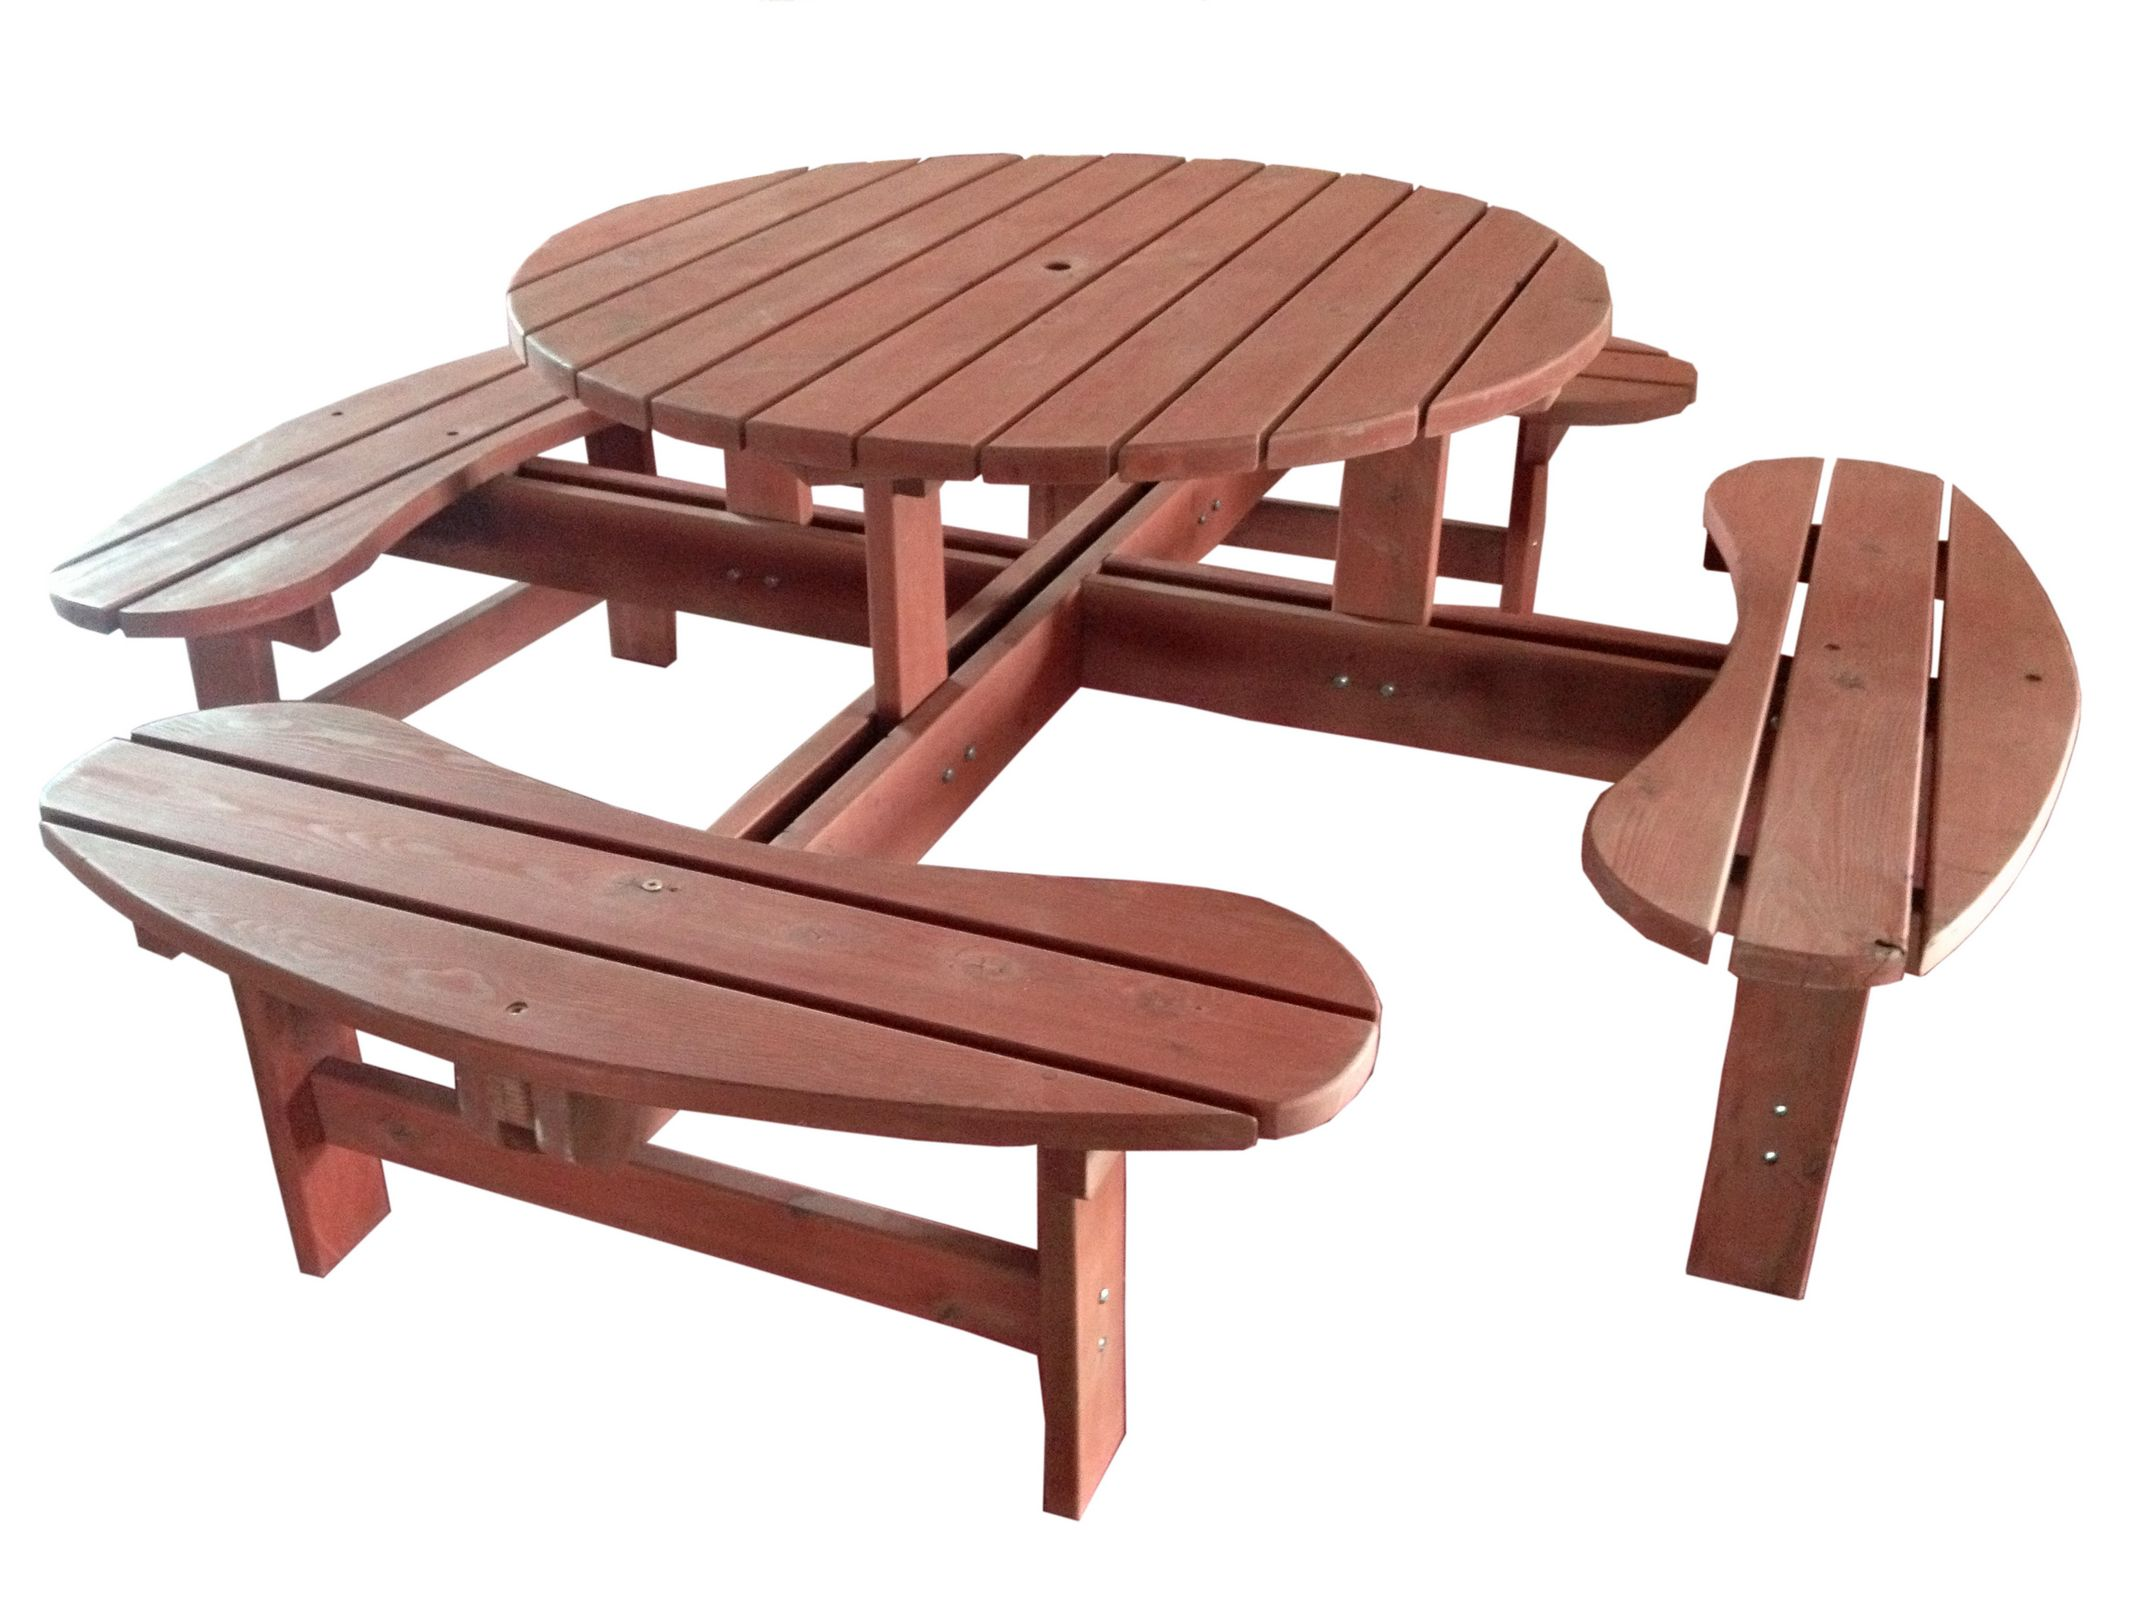 garden patio 8 seater wooden pub bench round picnic table furniture brown new ebay. Black Bedroom Furniture Sets. Home Design Ideas